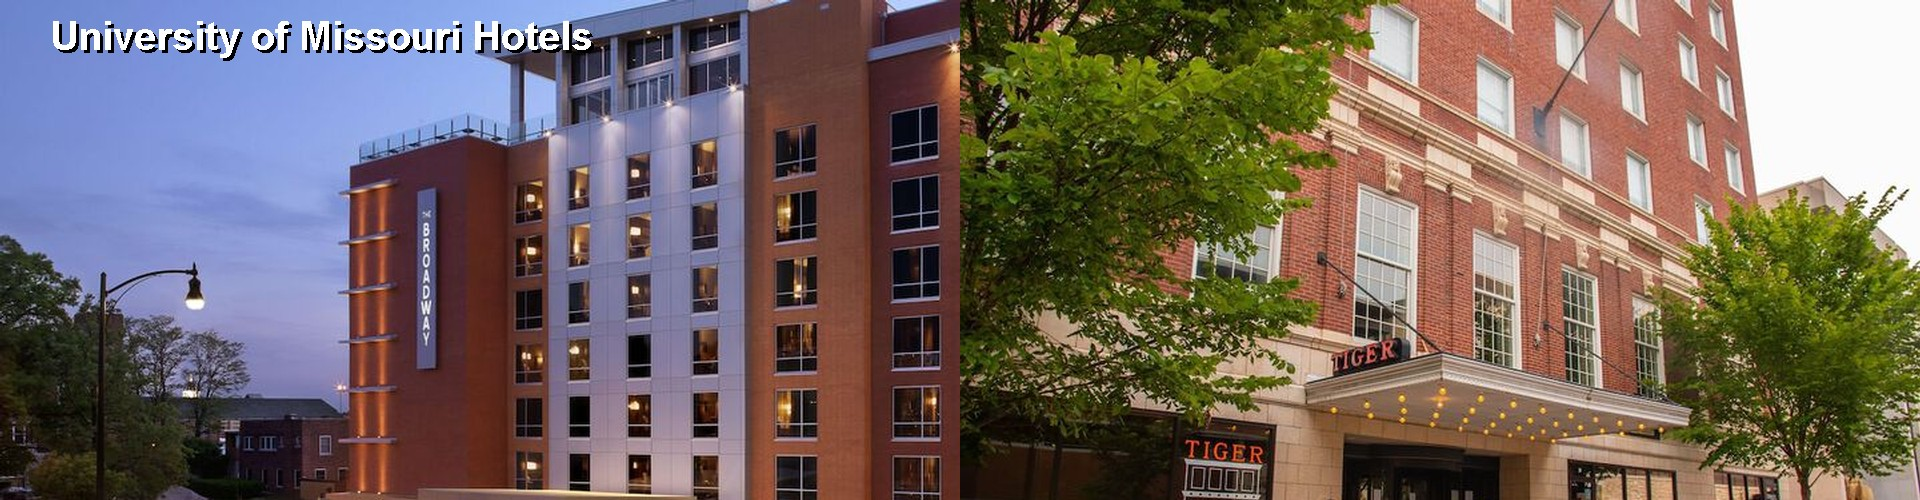 5 Best Hotels near University of Missouri